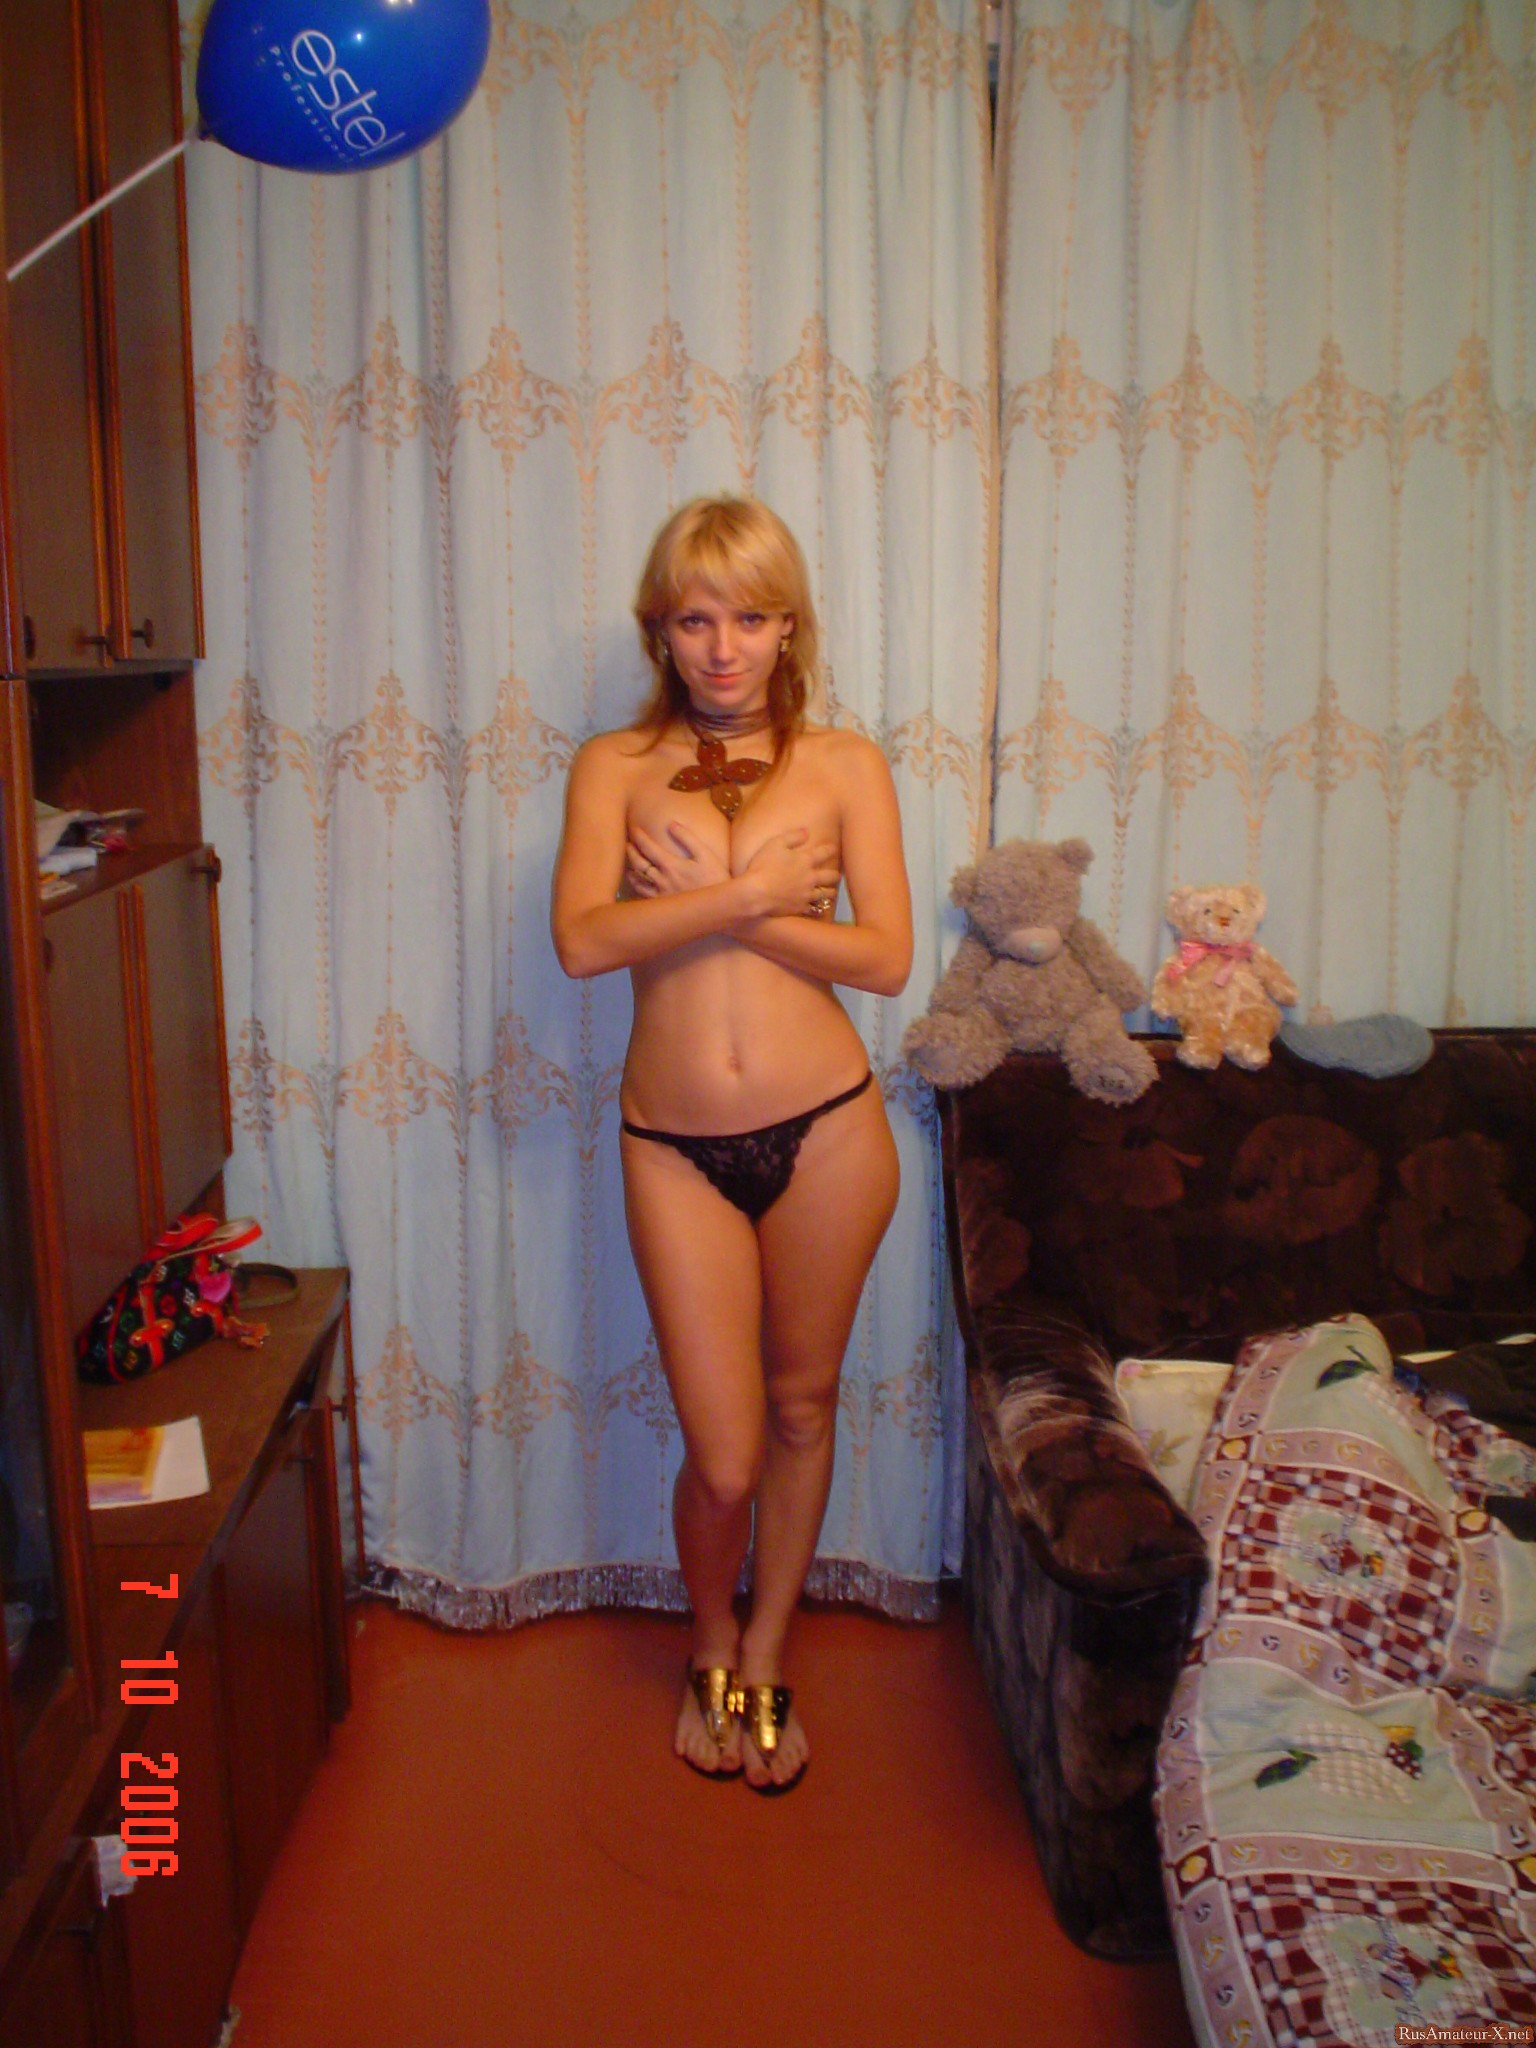 Caught naked by family images 418